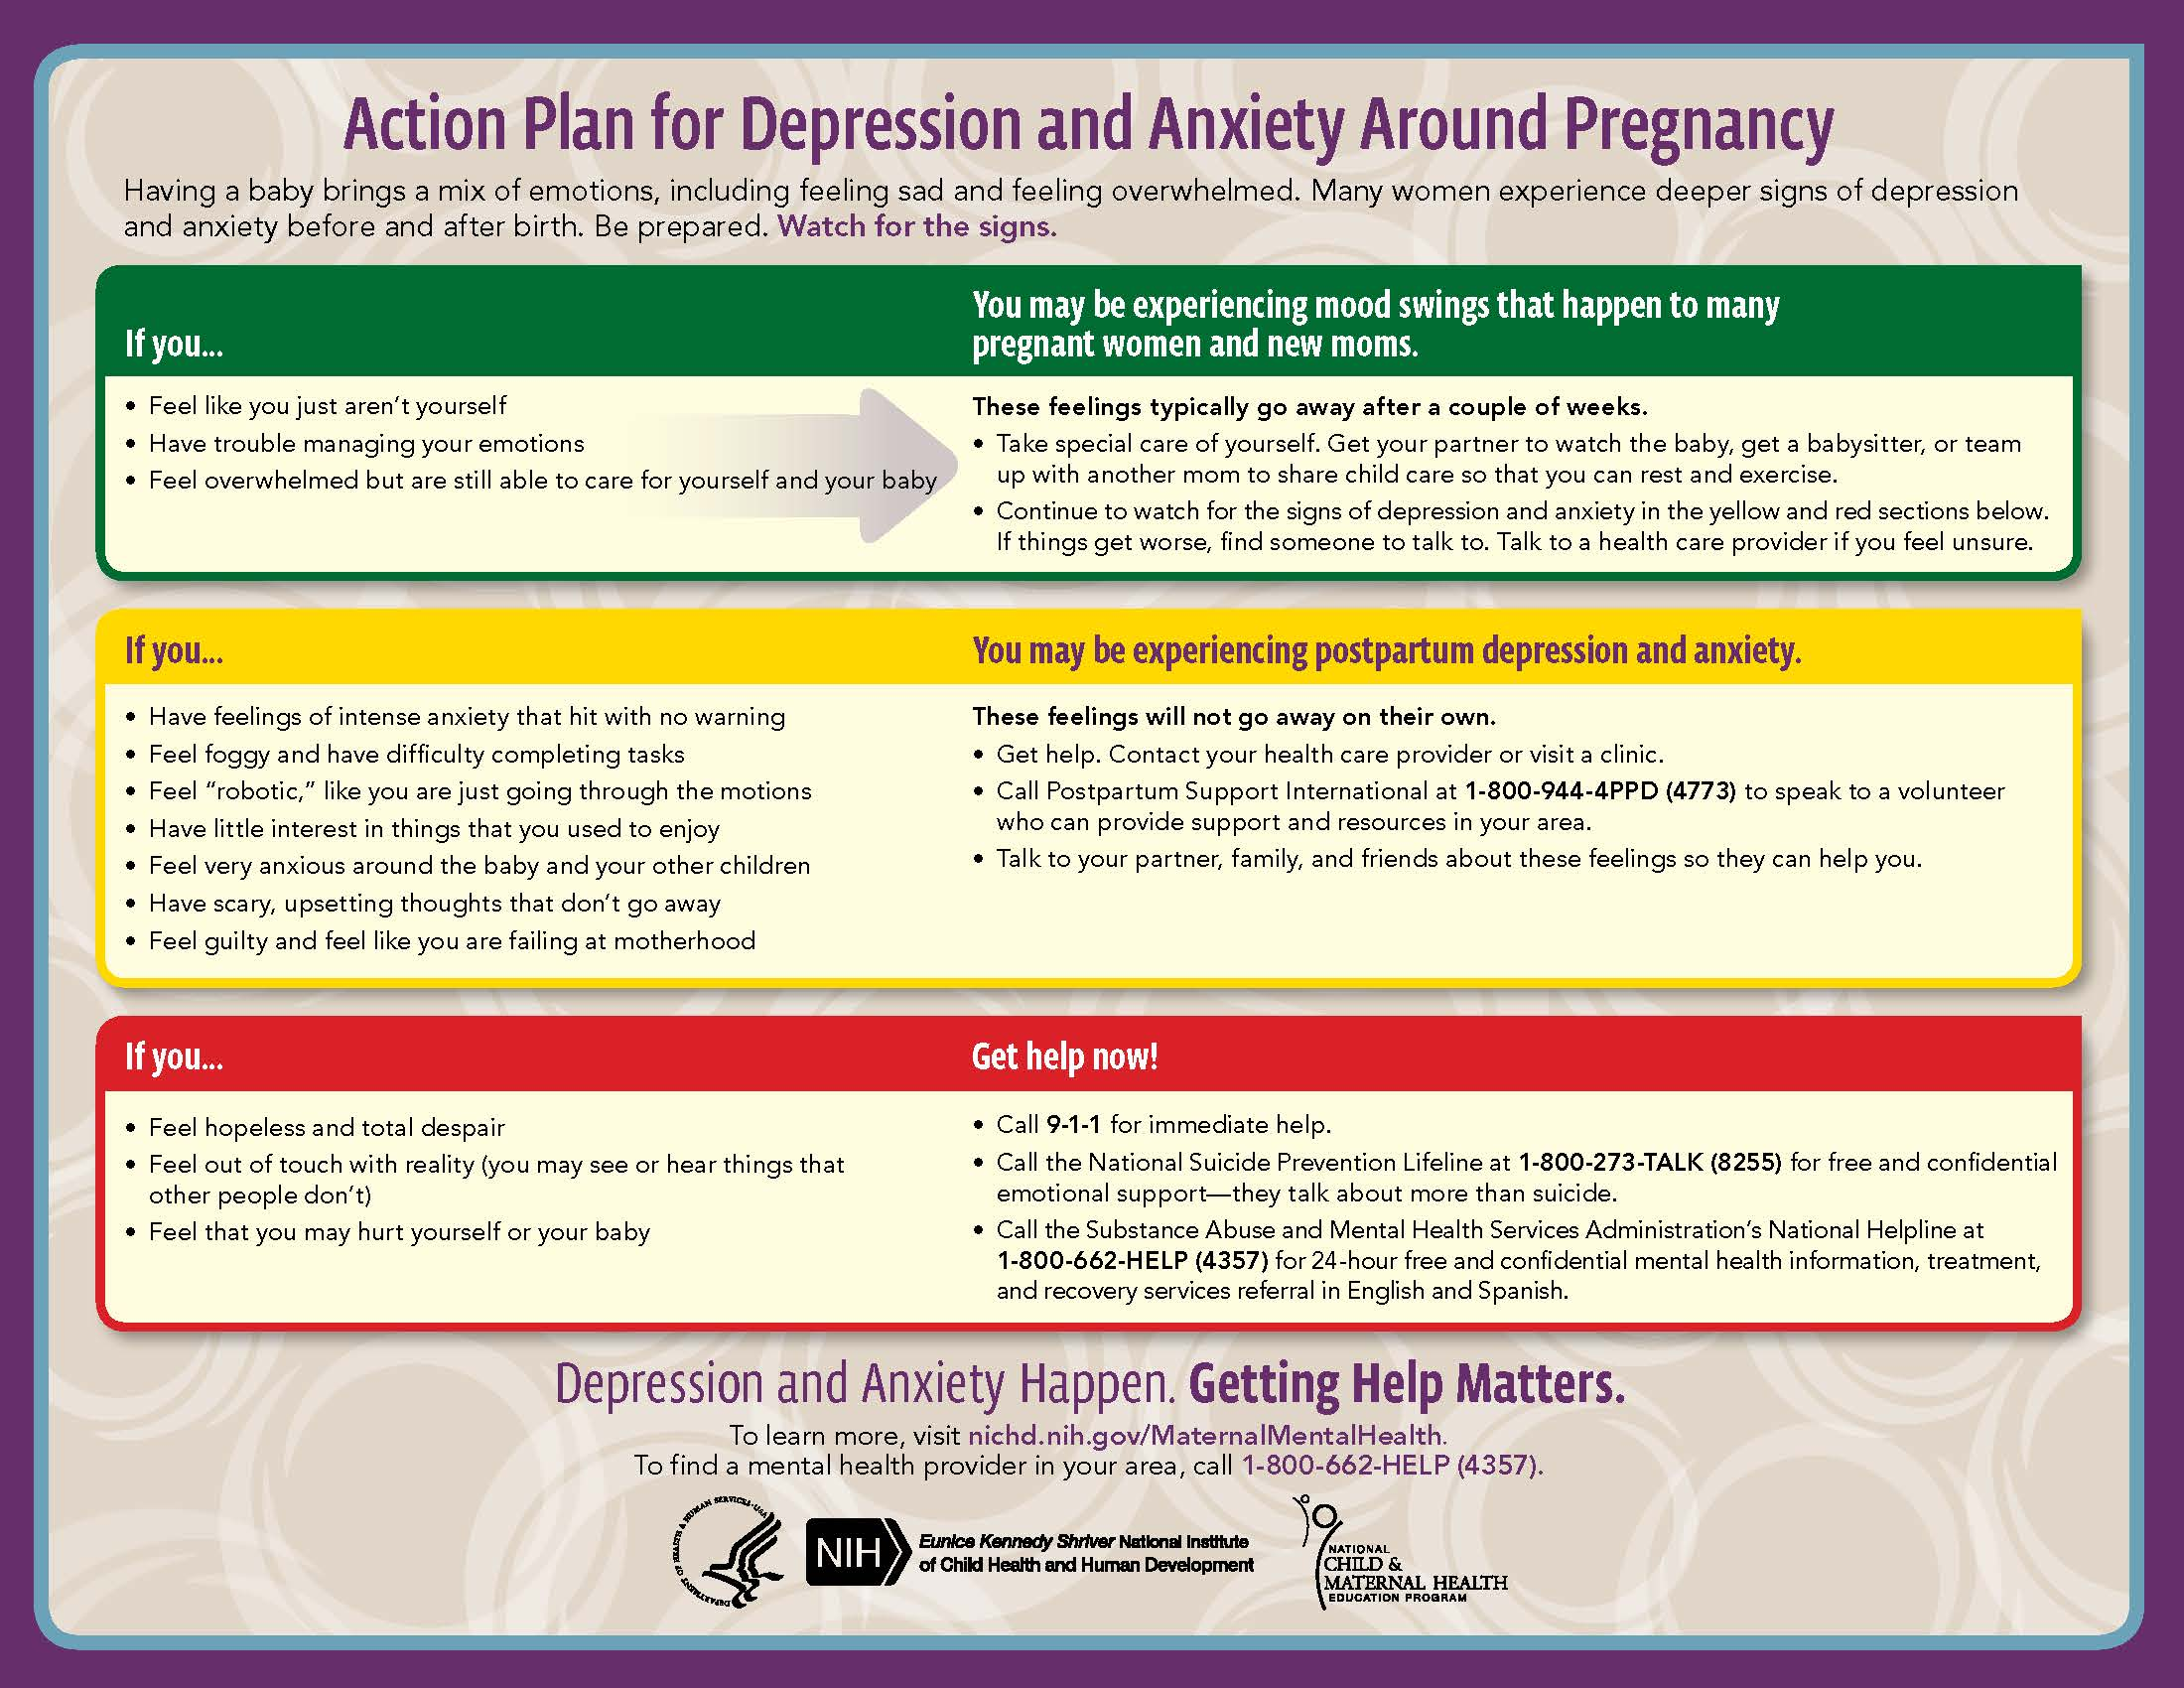 Moms' Mental Health Matters Action Plan Tear Pad